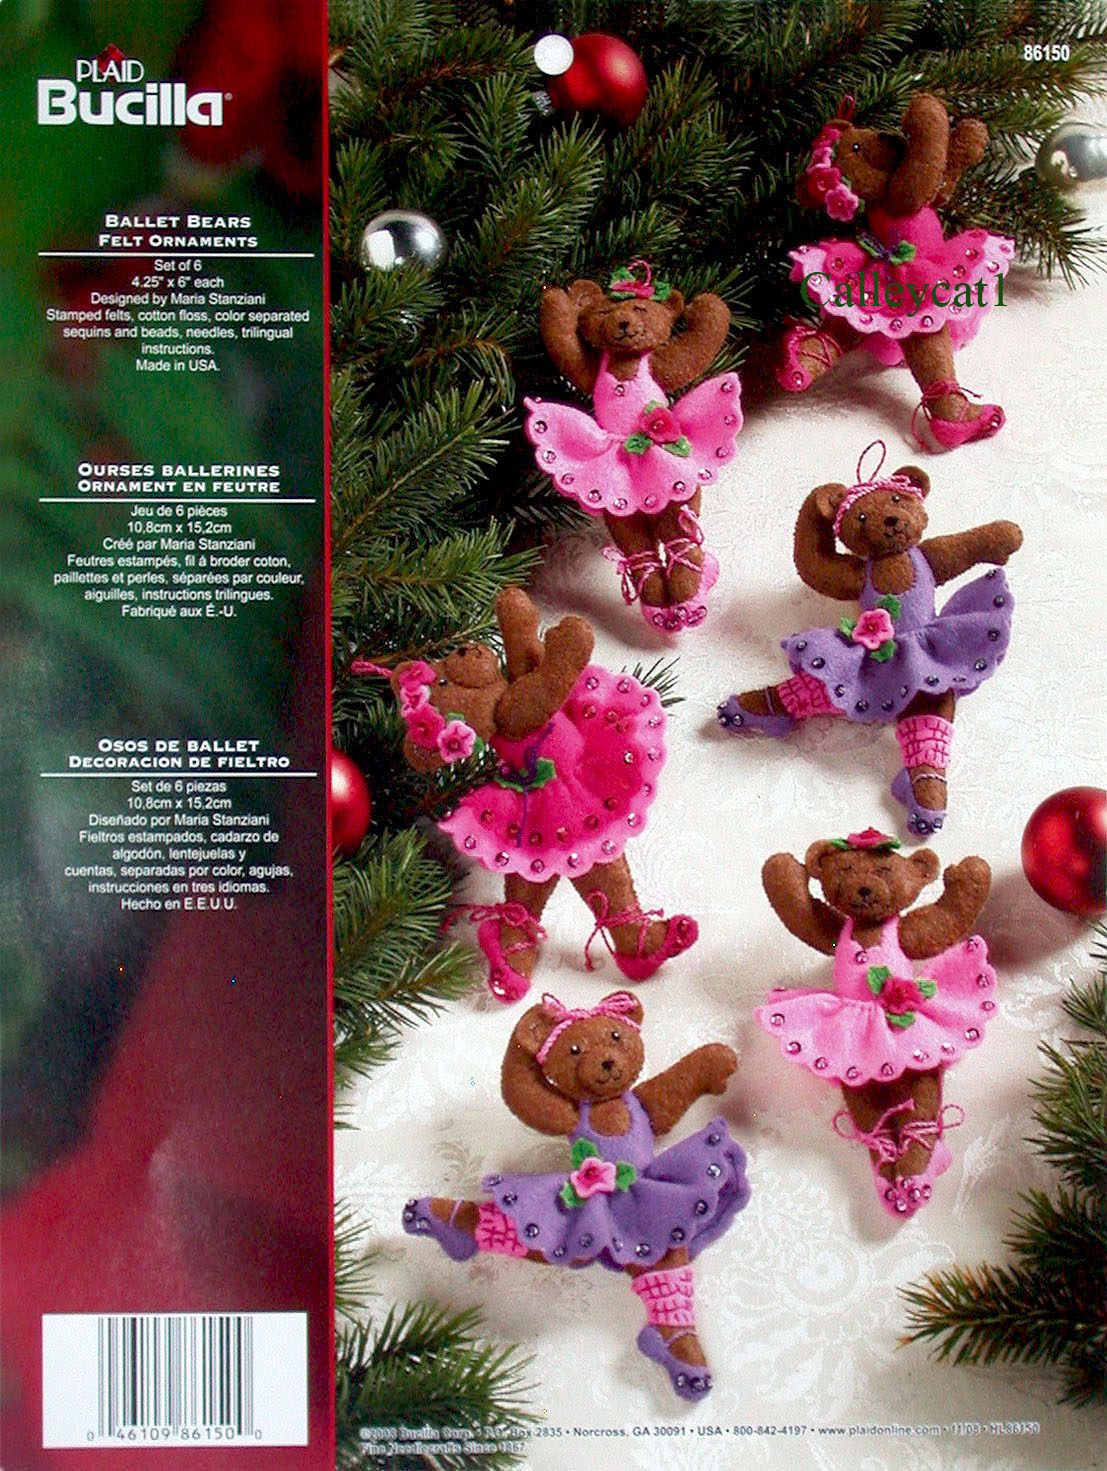 ballet bears bucilla felt ornament kit 86150